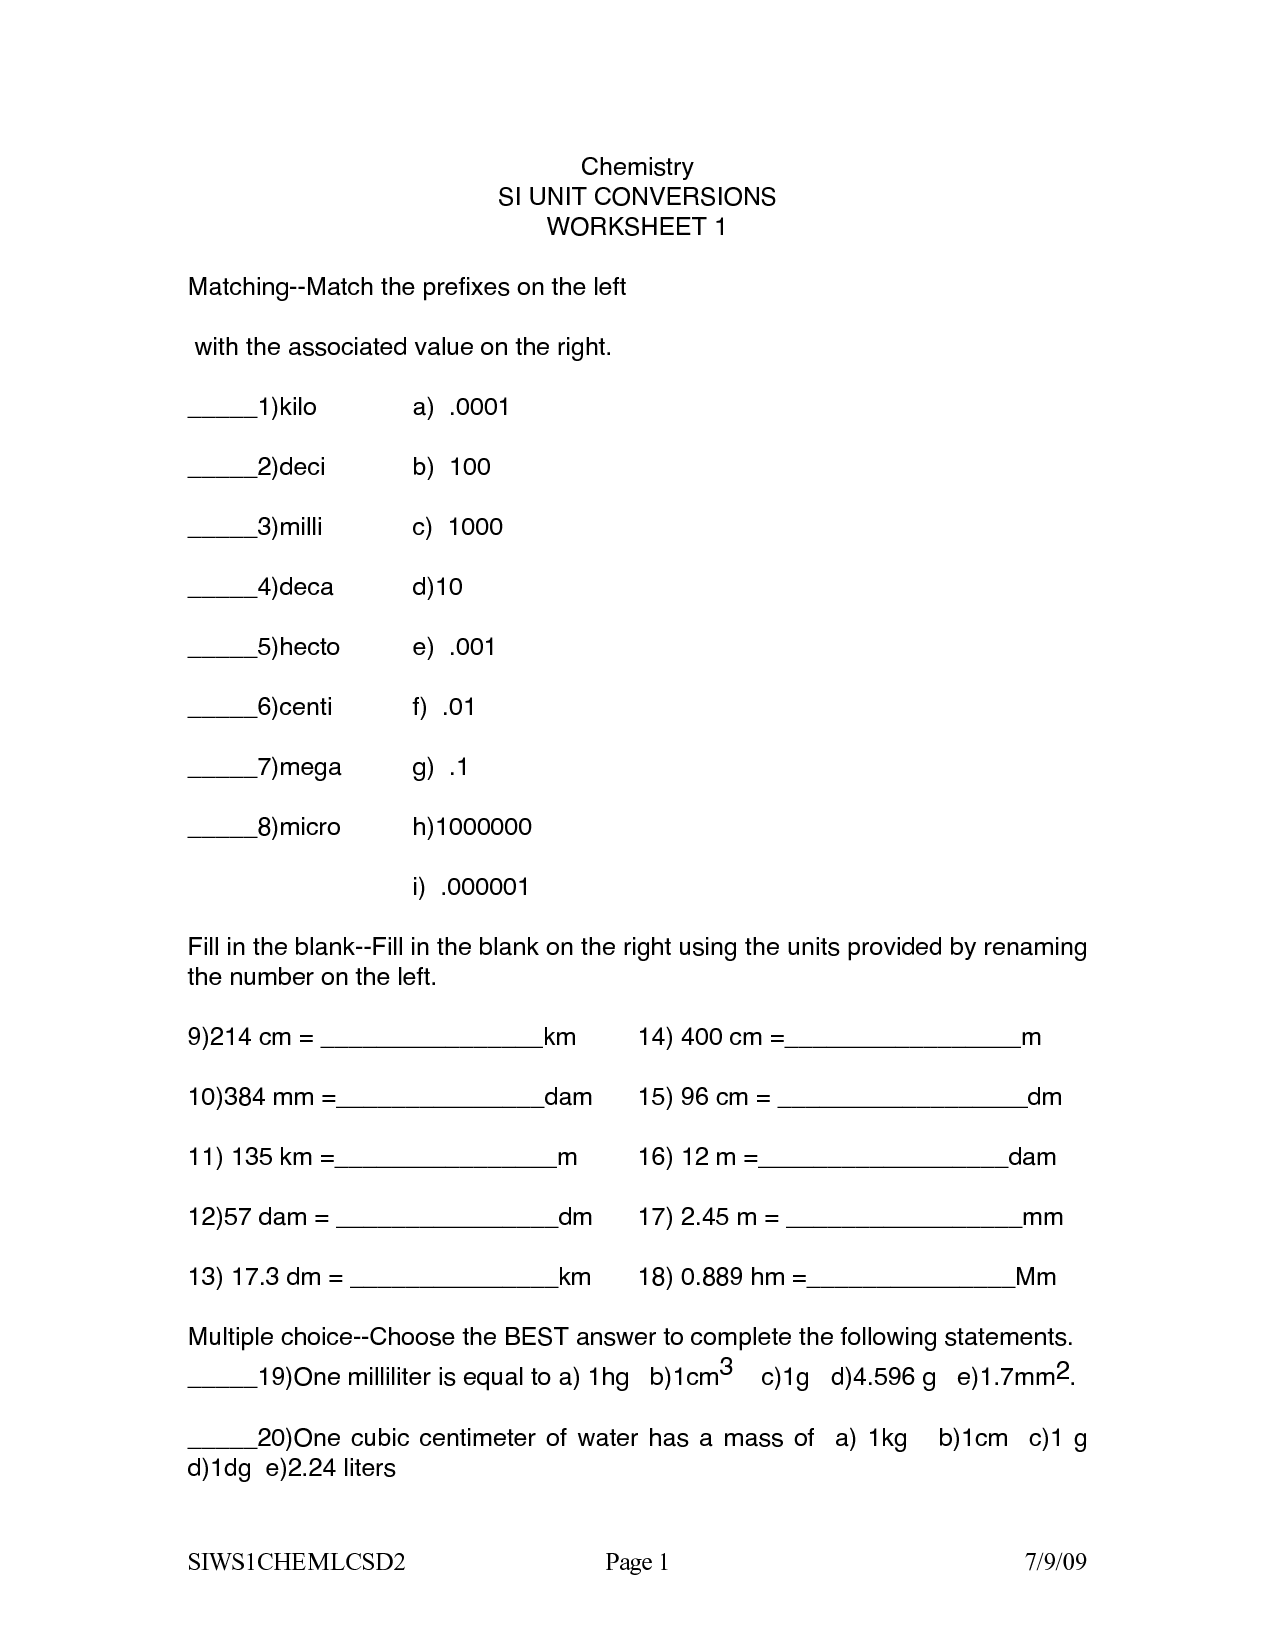 26 Chemistry Measurements And Calculations Worksheet